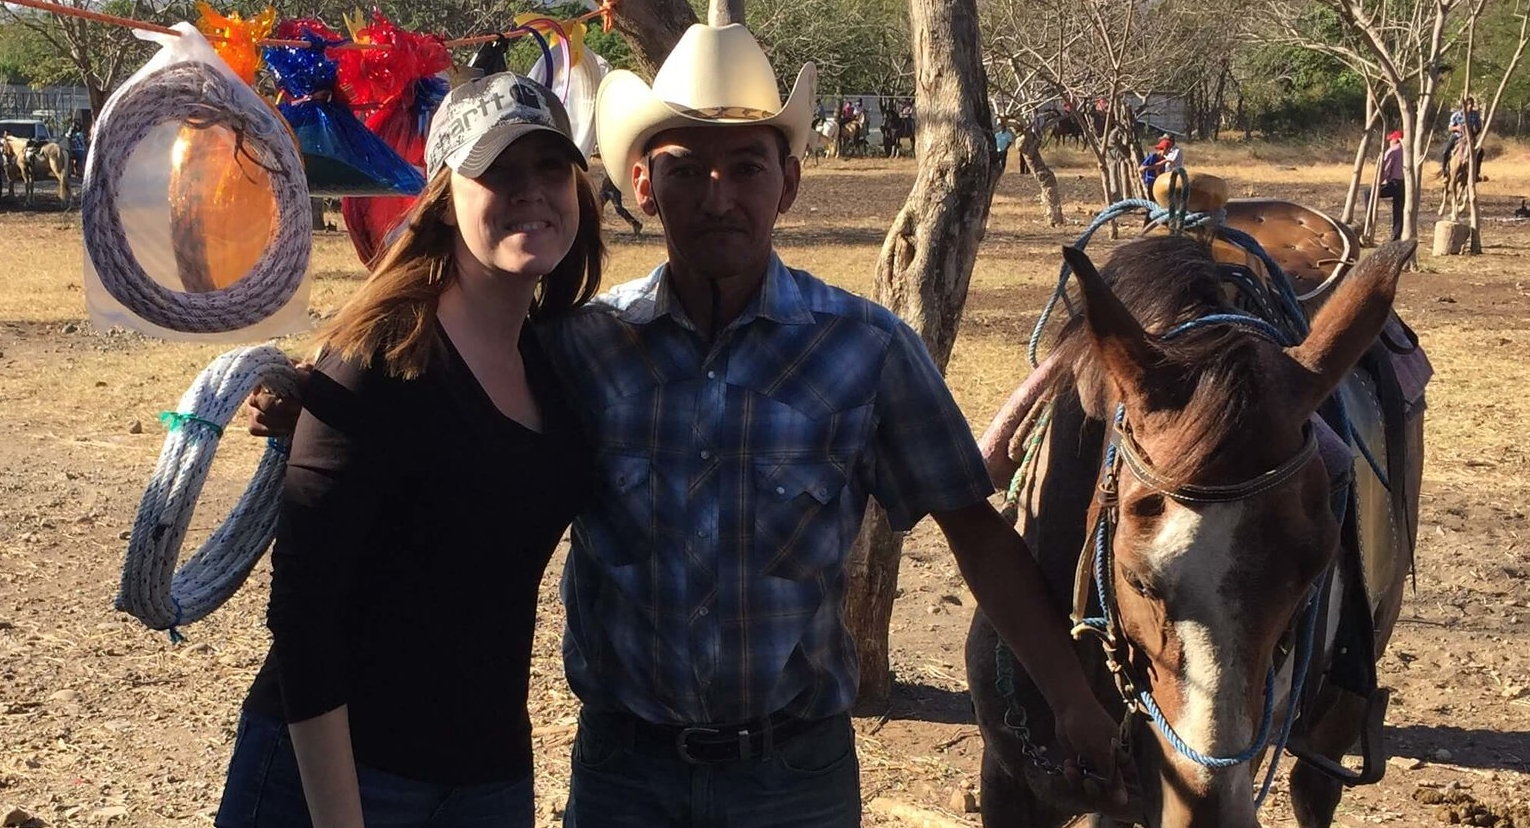 Laura Slaughter poses with a cowboy for a picture after giving him a prize of a rope. And yes, she did give him a kiss on the cheek!